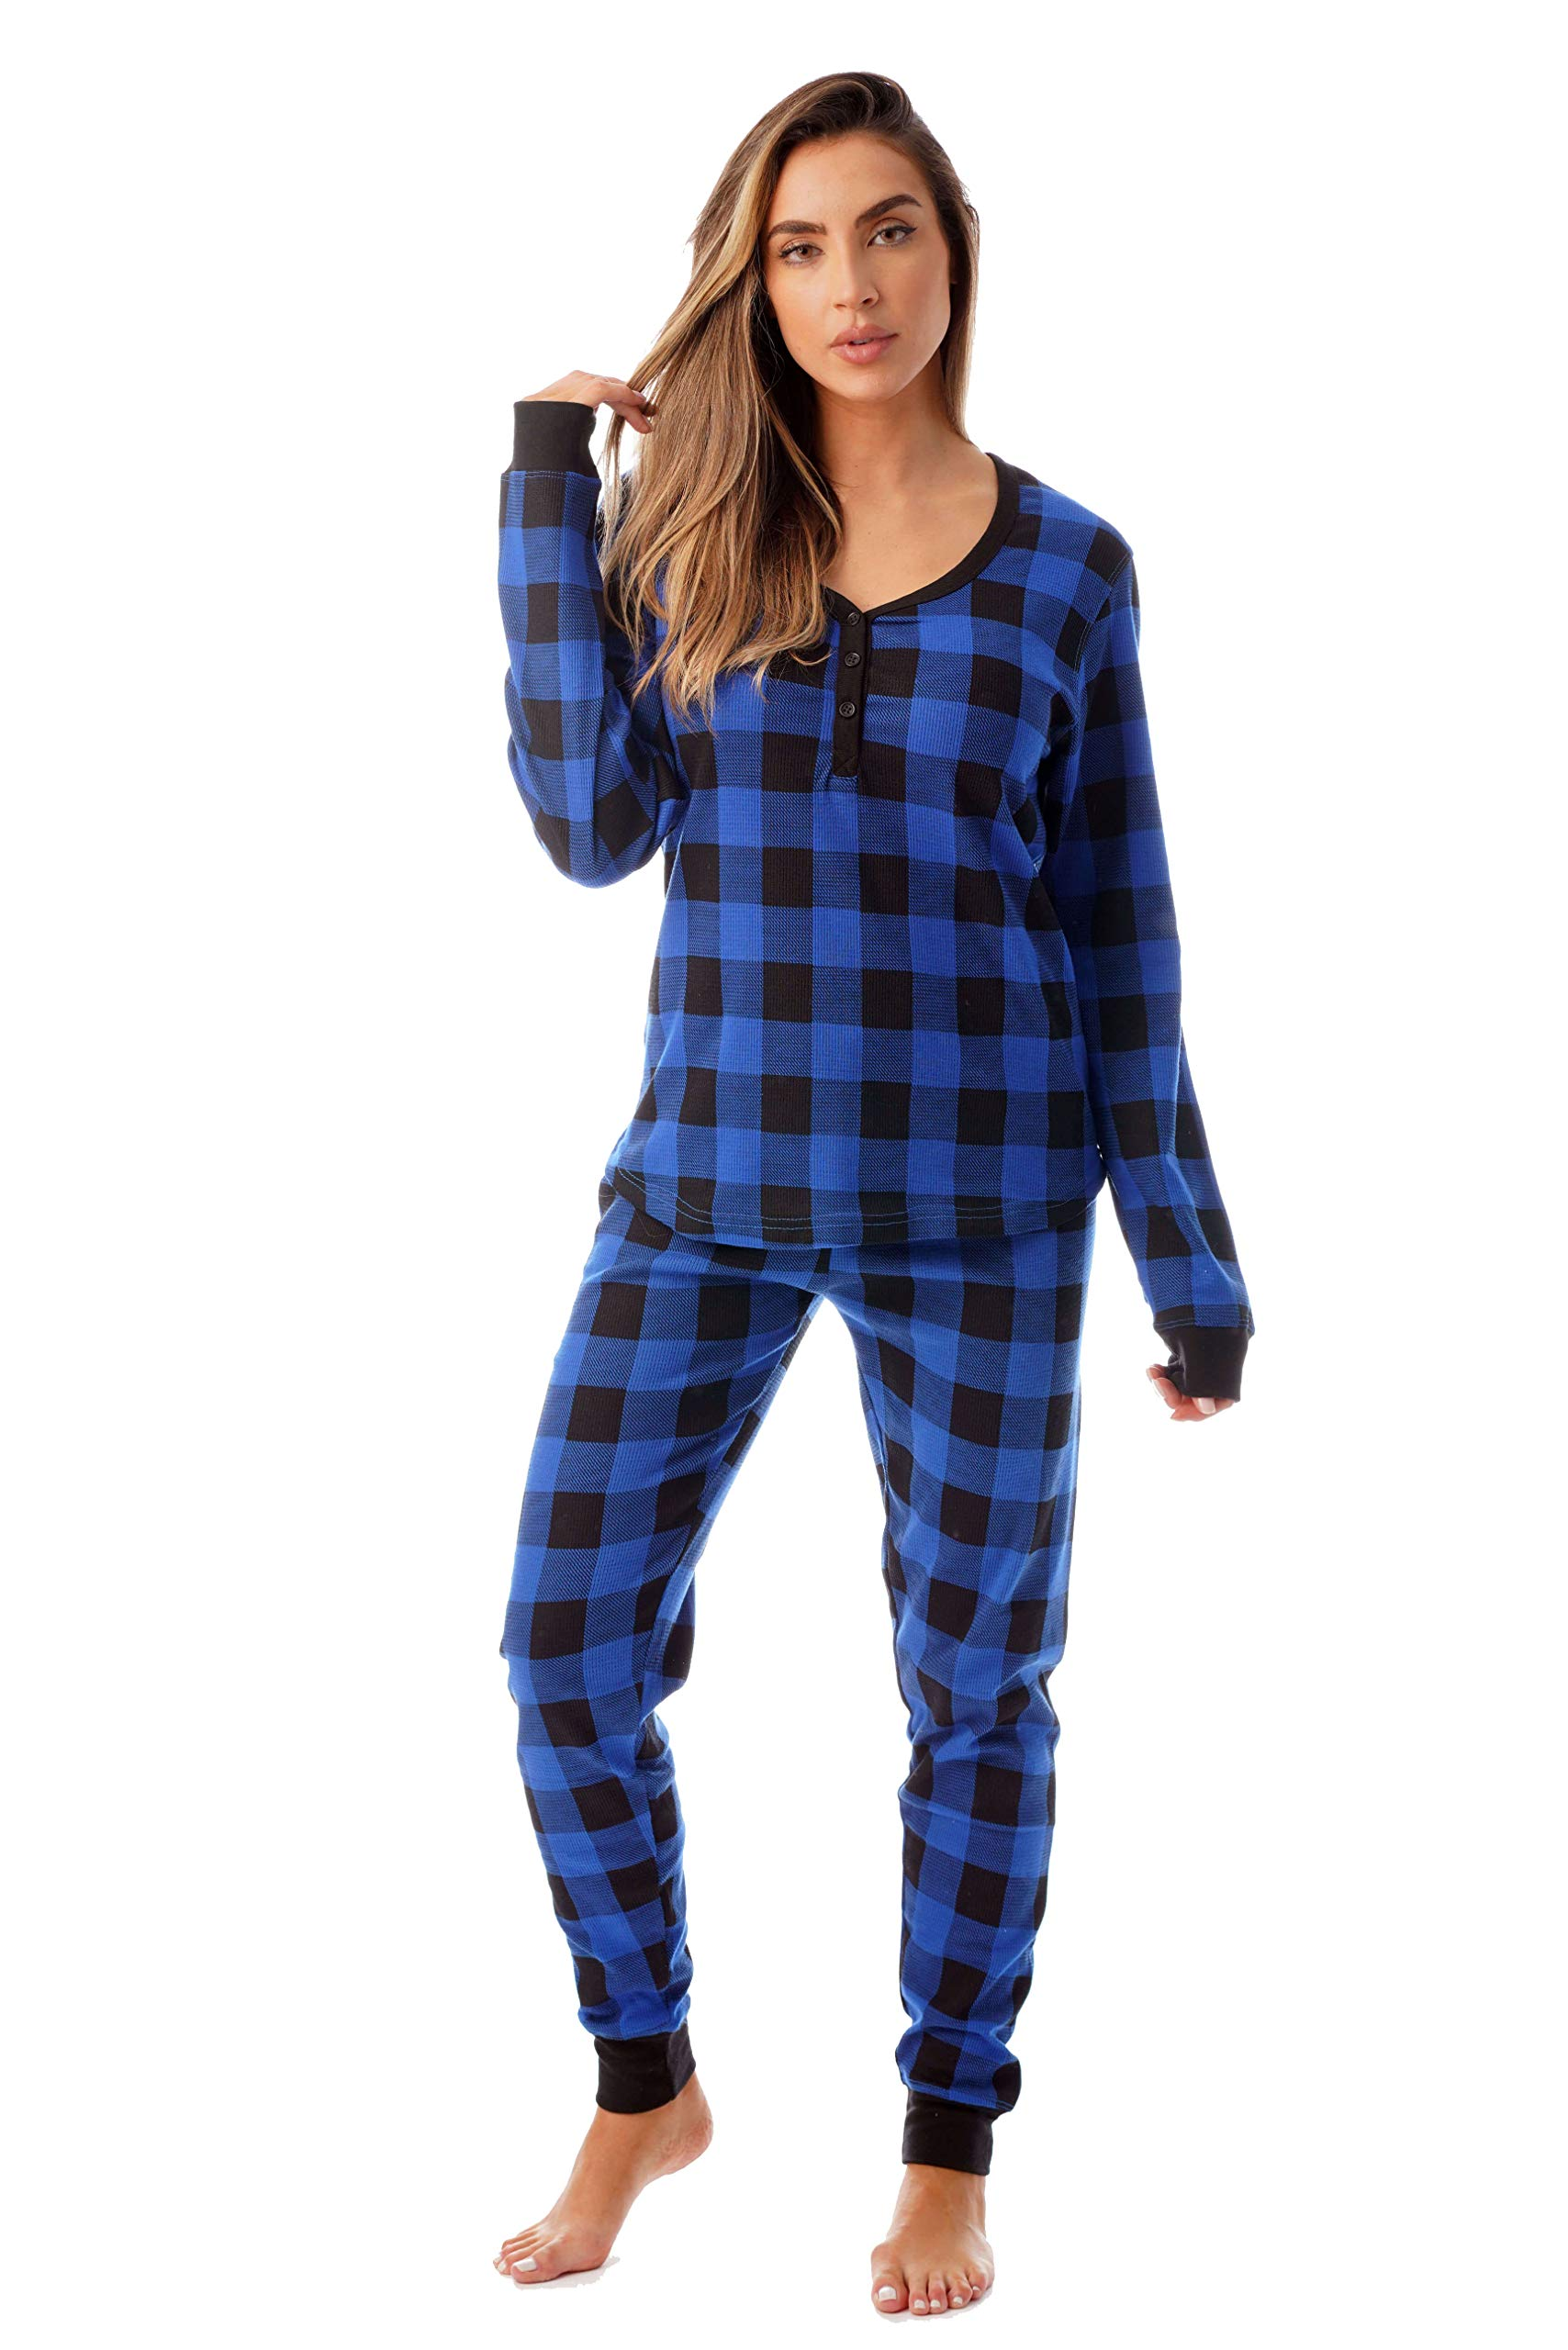 #followme Buffalo Plaid 2 Piece Base Layer Thermal Underwear Set for Women 6372-10195-NEW-ROY-XL by #followme